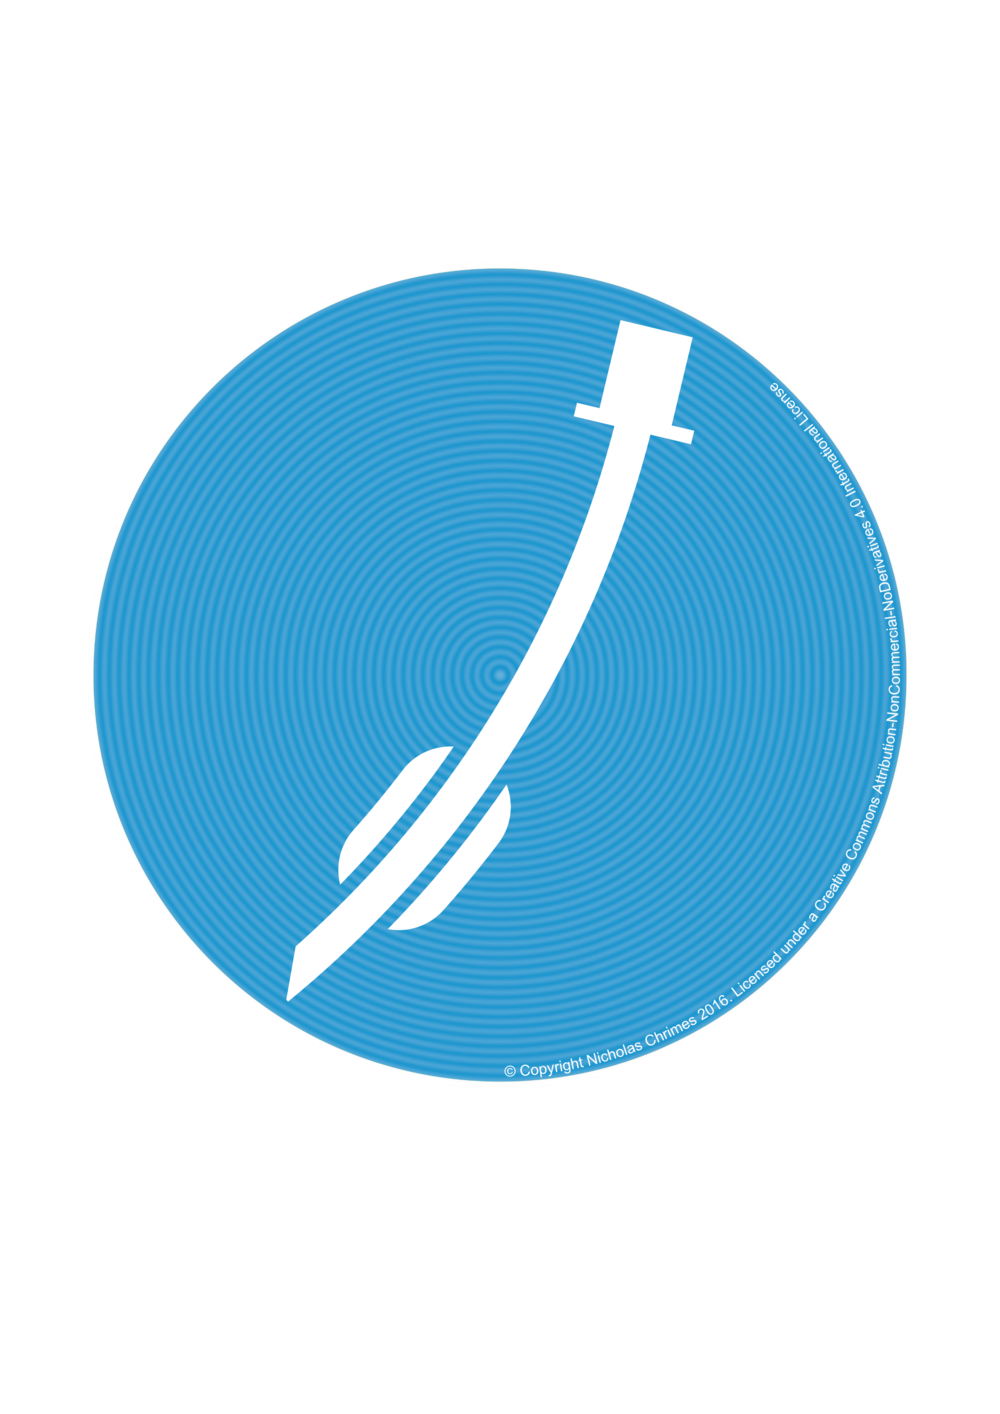 Endotracheal Tube Icon - without text (Right click to download)